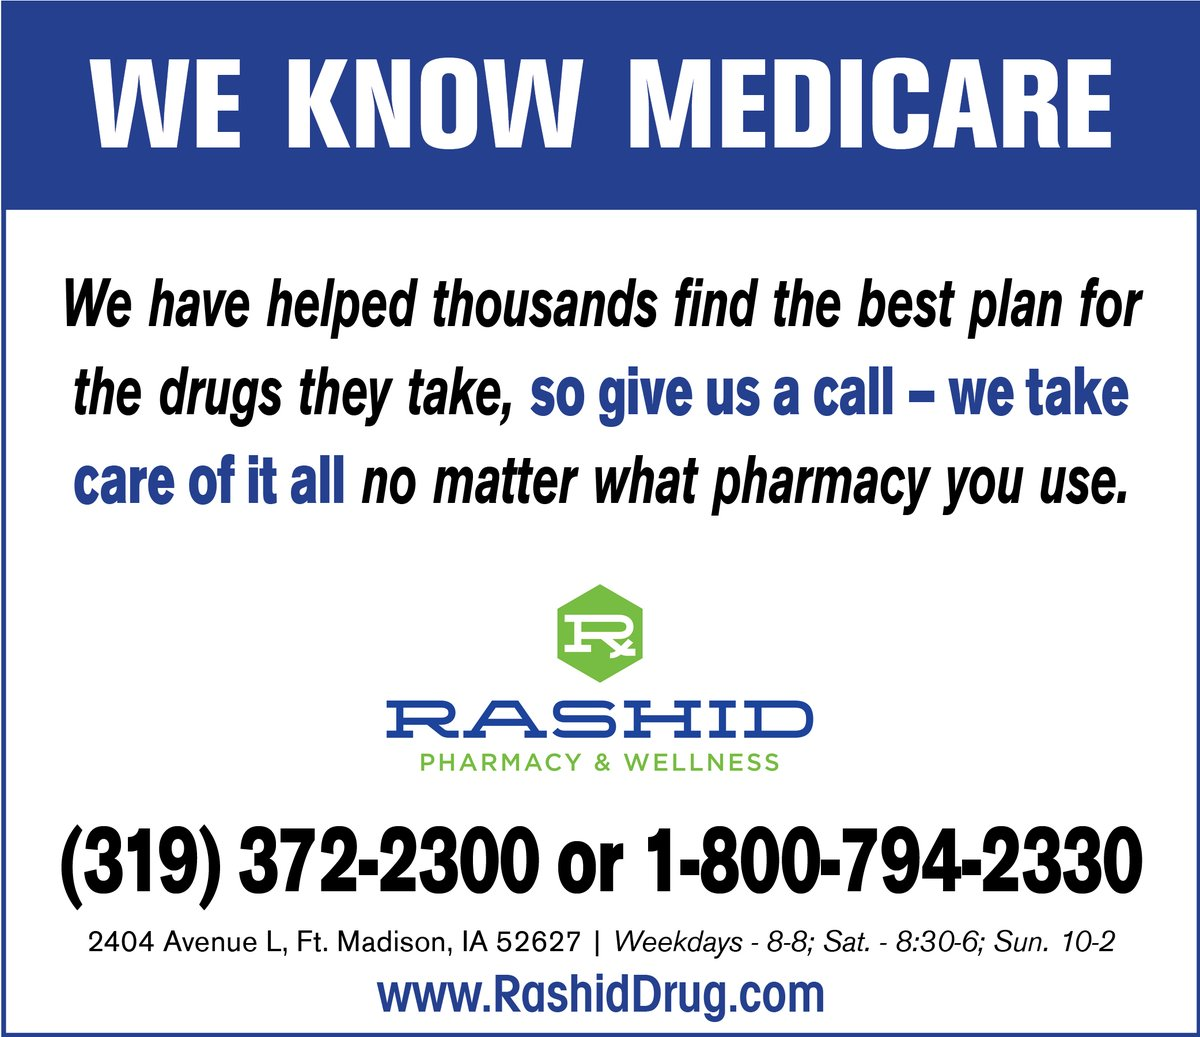 test Twitter Media - If you pay more than $2 for these insulins, you're paying too much: Lantus, Levemir, Humalog, or Toujeo! Give Rashid Pharmacy & Wellness a call & they'll take care of it all. THEY KNOW MEDICARE. 319-372-2300 or 800-794-2330. FREE DELIVERY AND MAILING ALMOST EVERYWHERE. https://t.co/L8VgMgT0tv